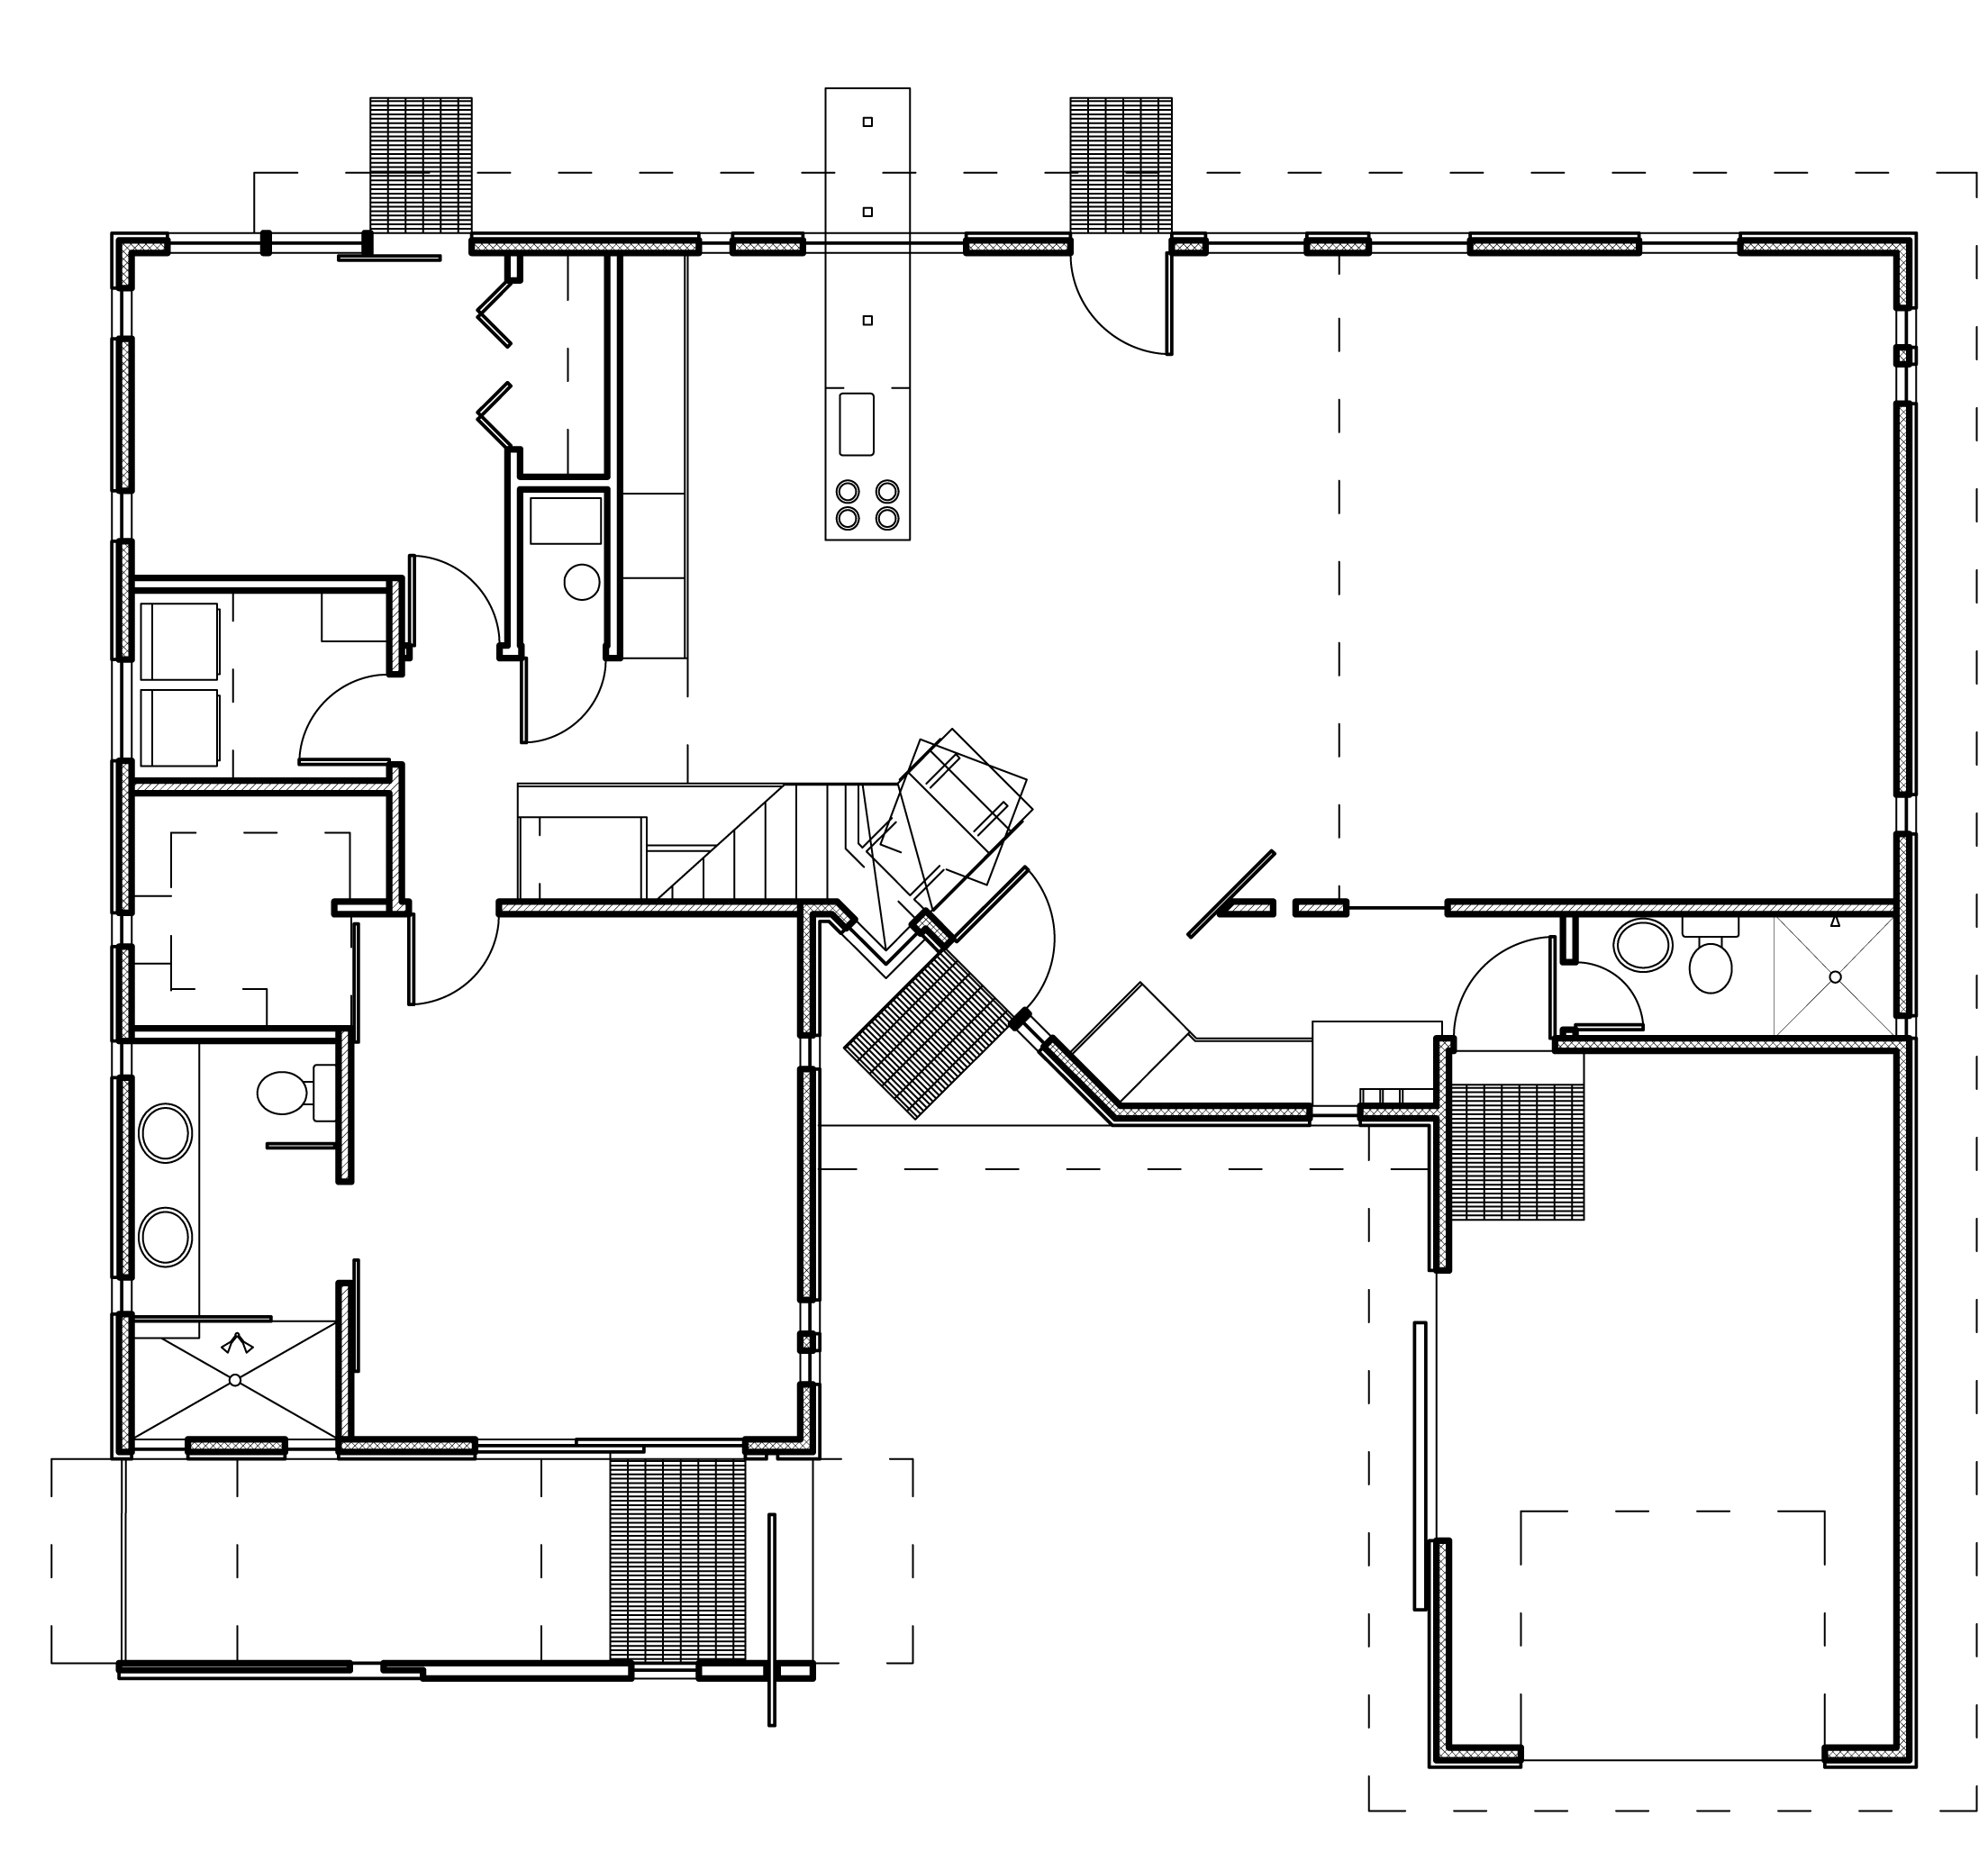 Modern house plans contemporary home designs floor plan 03 for Modern home design plans